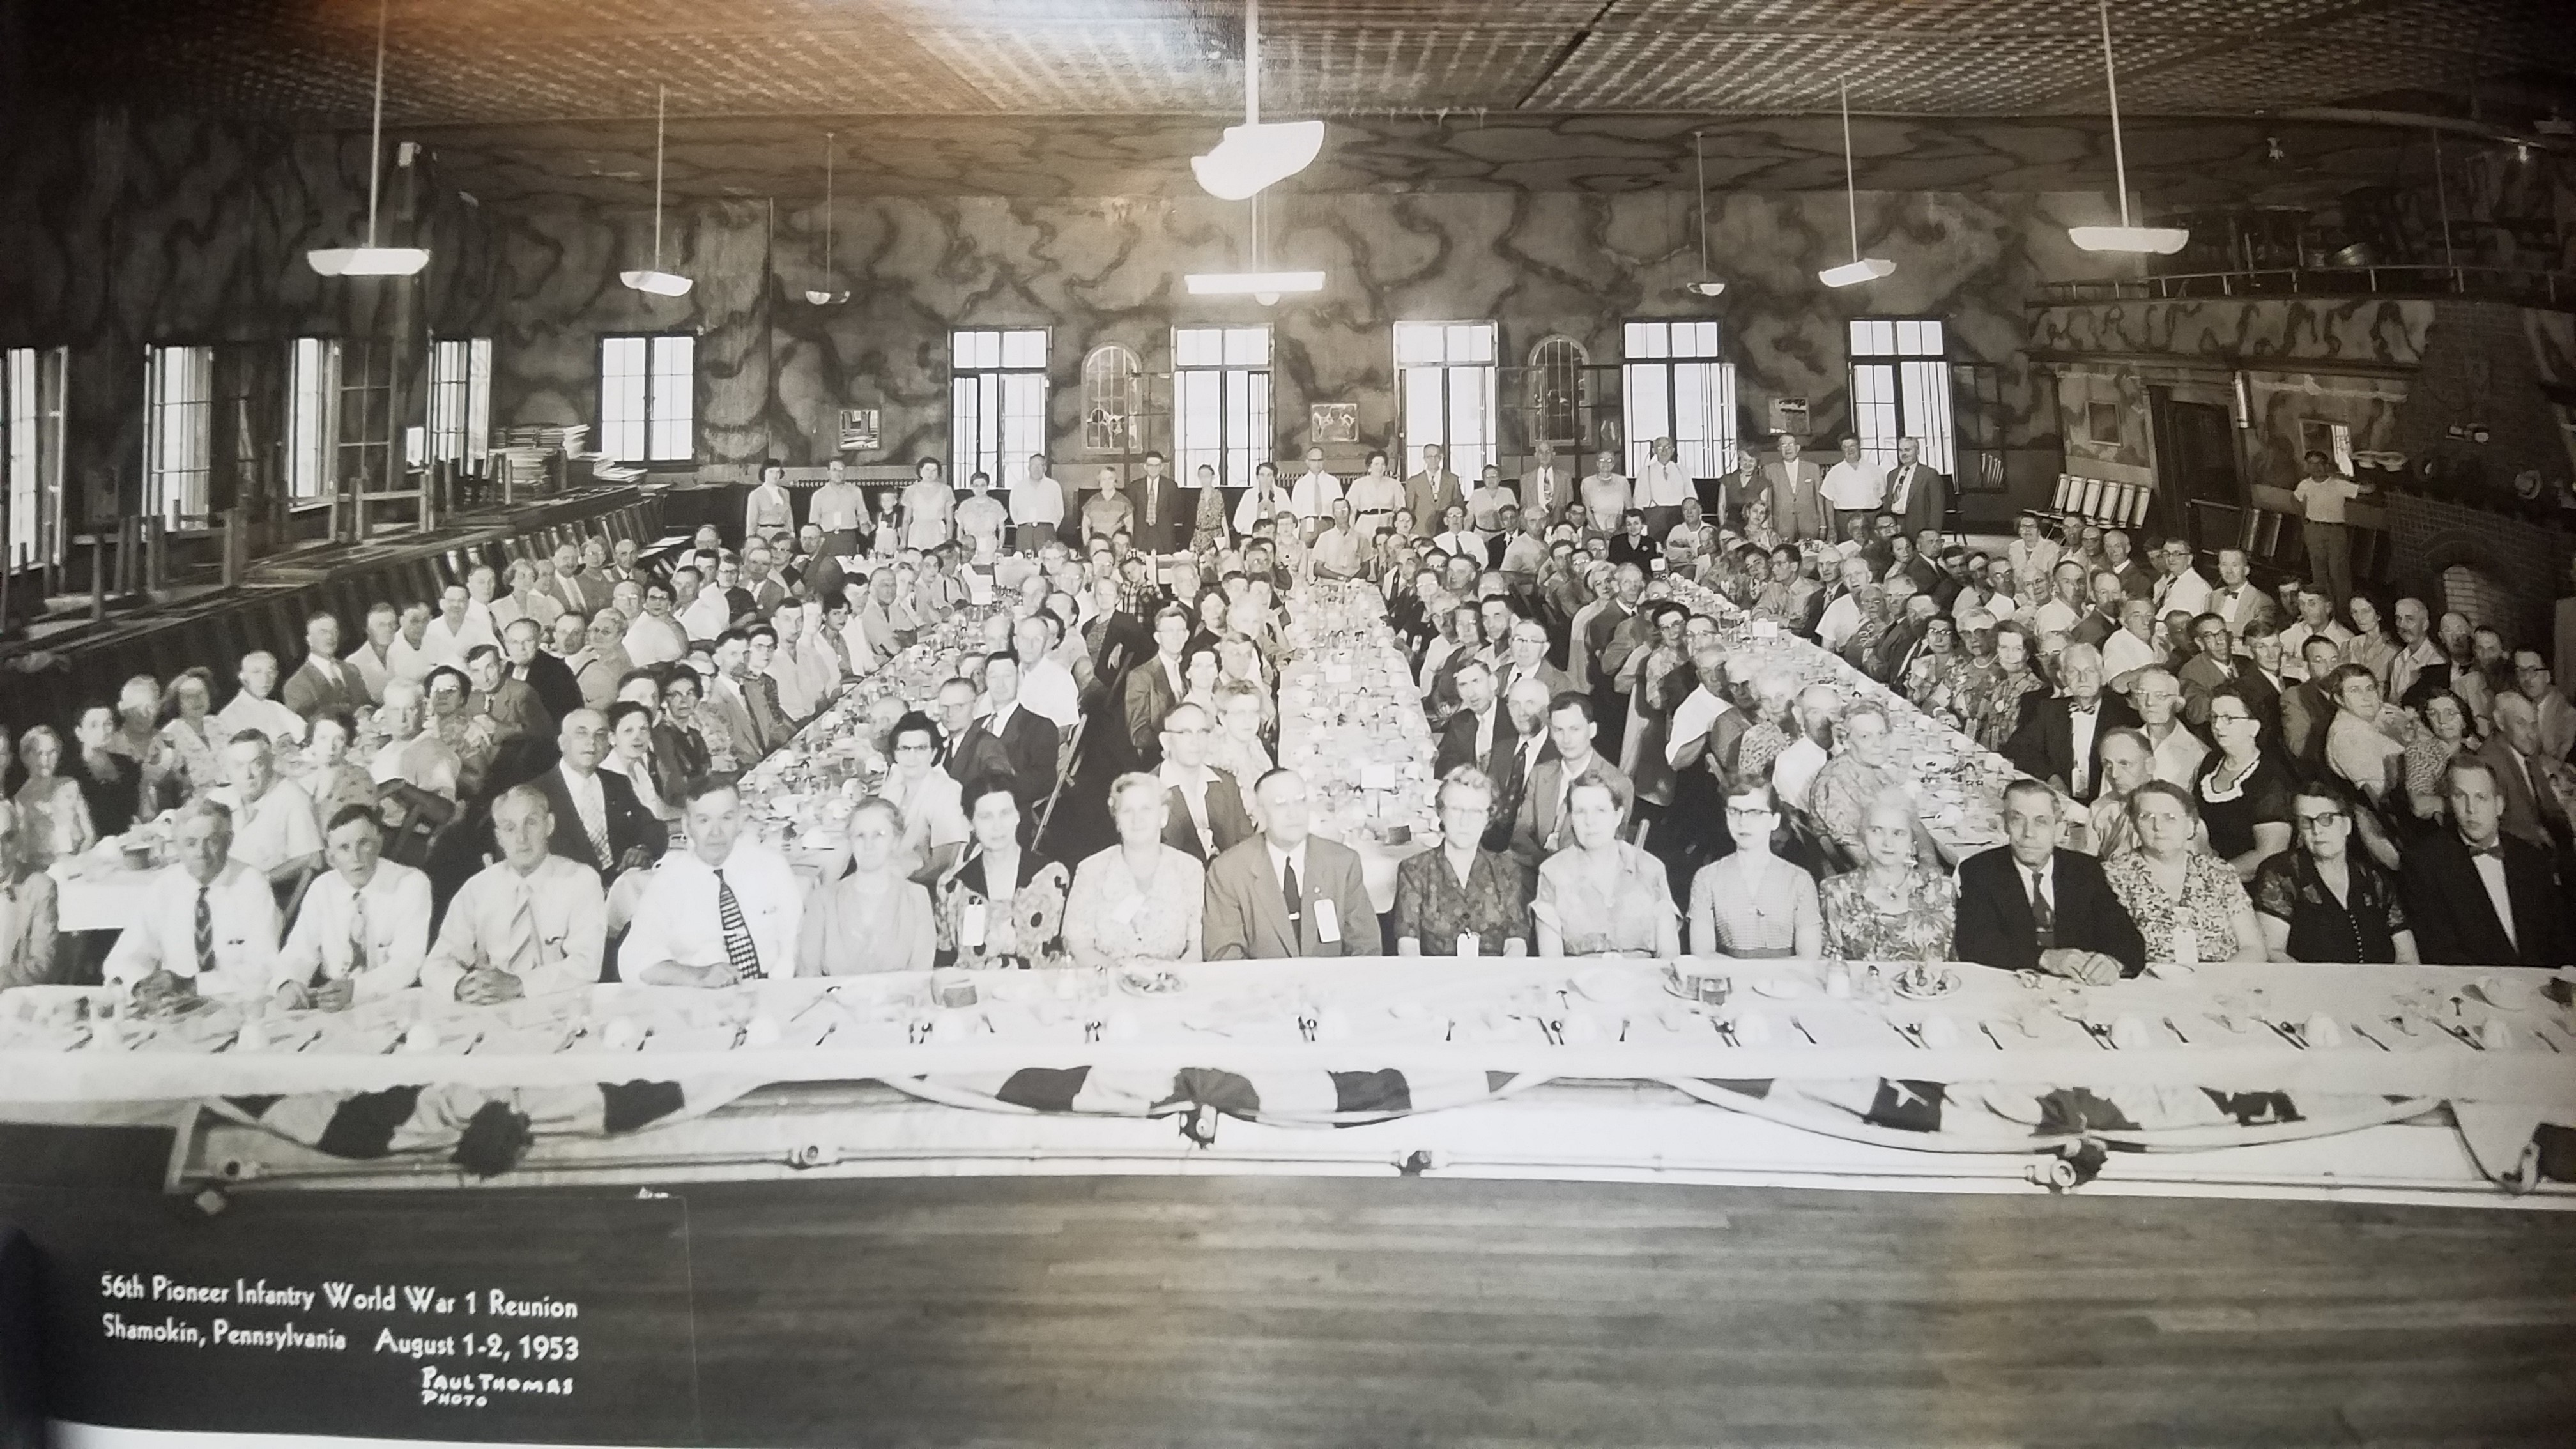 56th Pioneer Infantry Reunion Photo